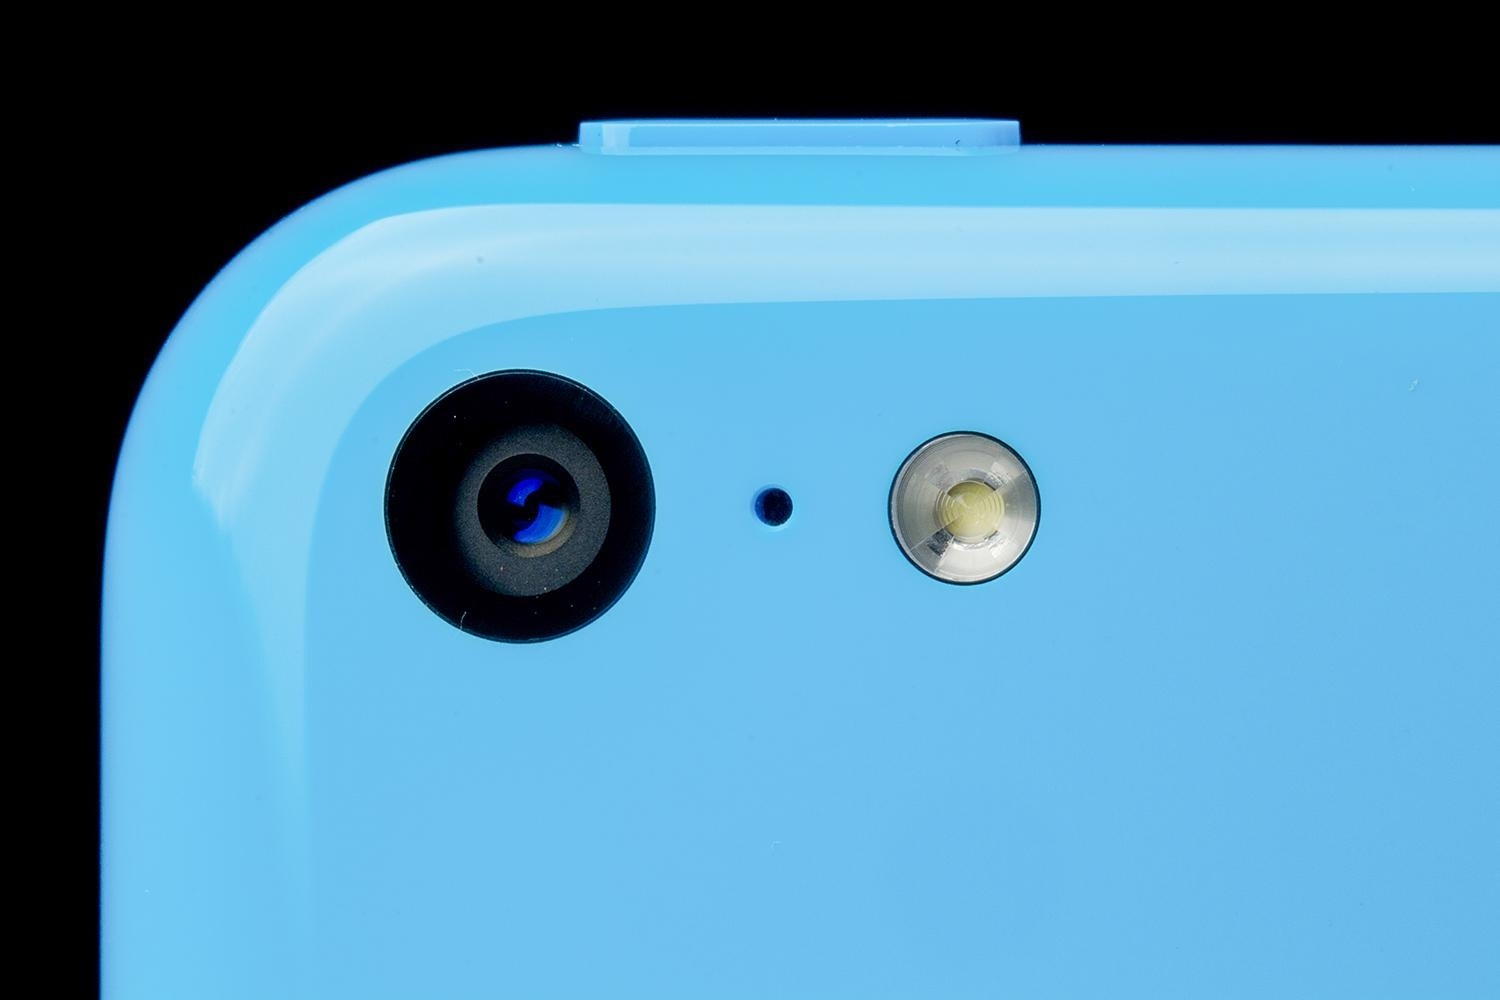 apple-iphone-5c-macro-rear-camera-1500x1000